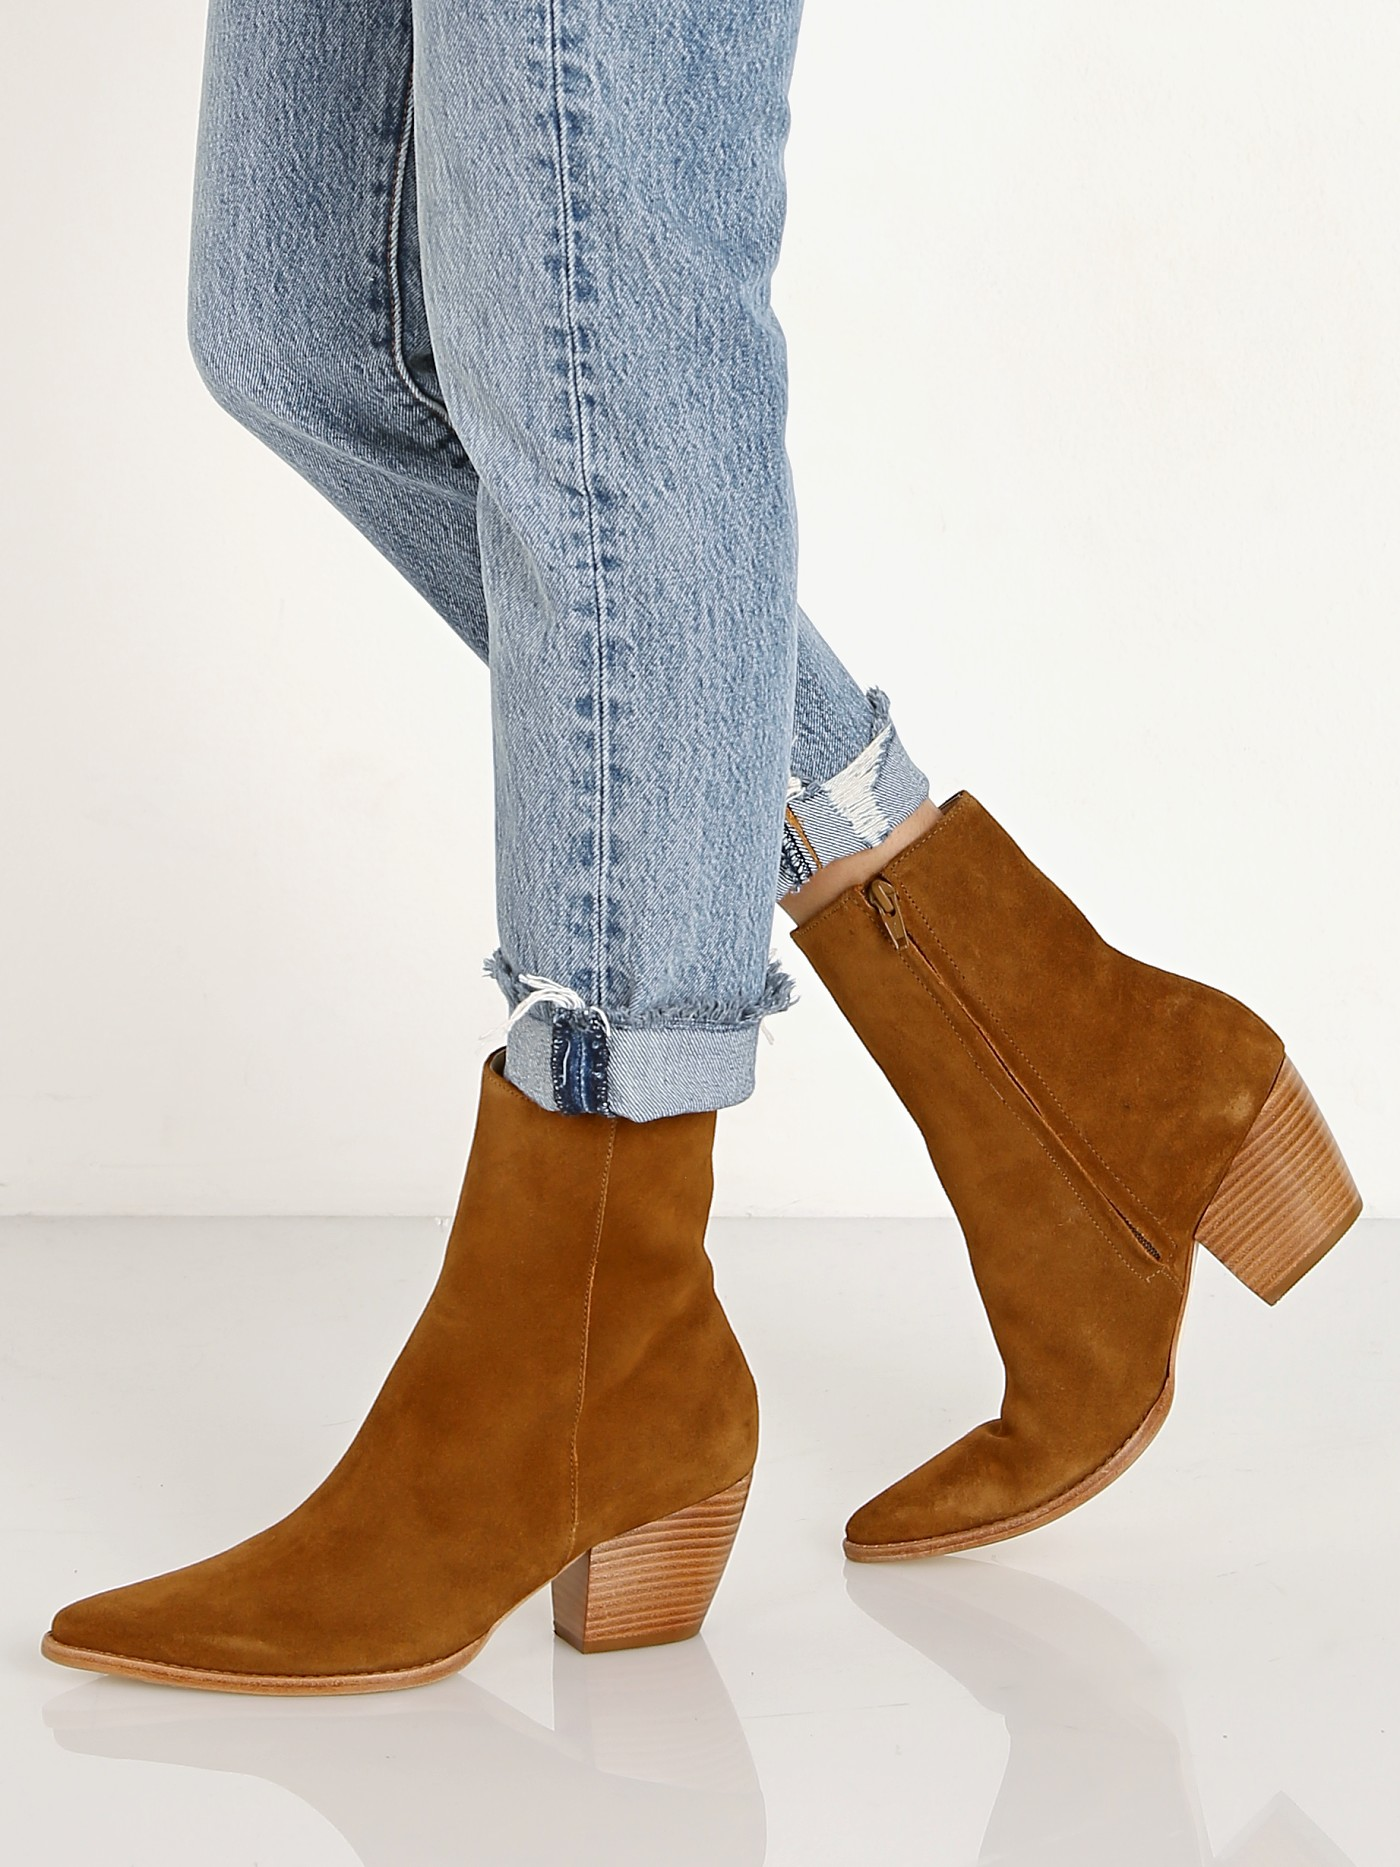 7b715e795b77 Matisse Caty Boot Fawn Suede CTYLSBRX12E - Free Shipping at Largo Drive